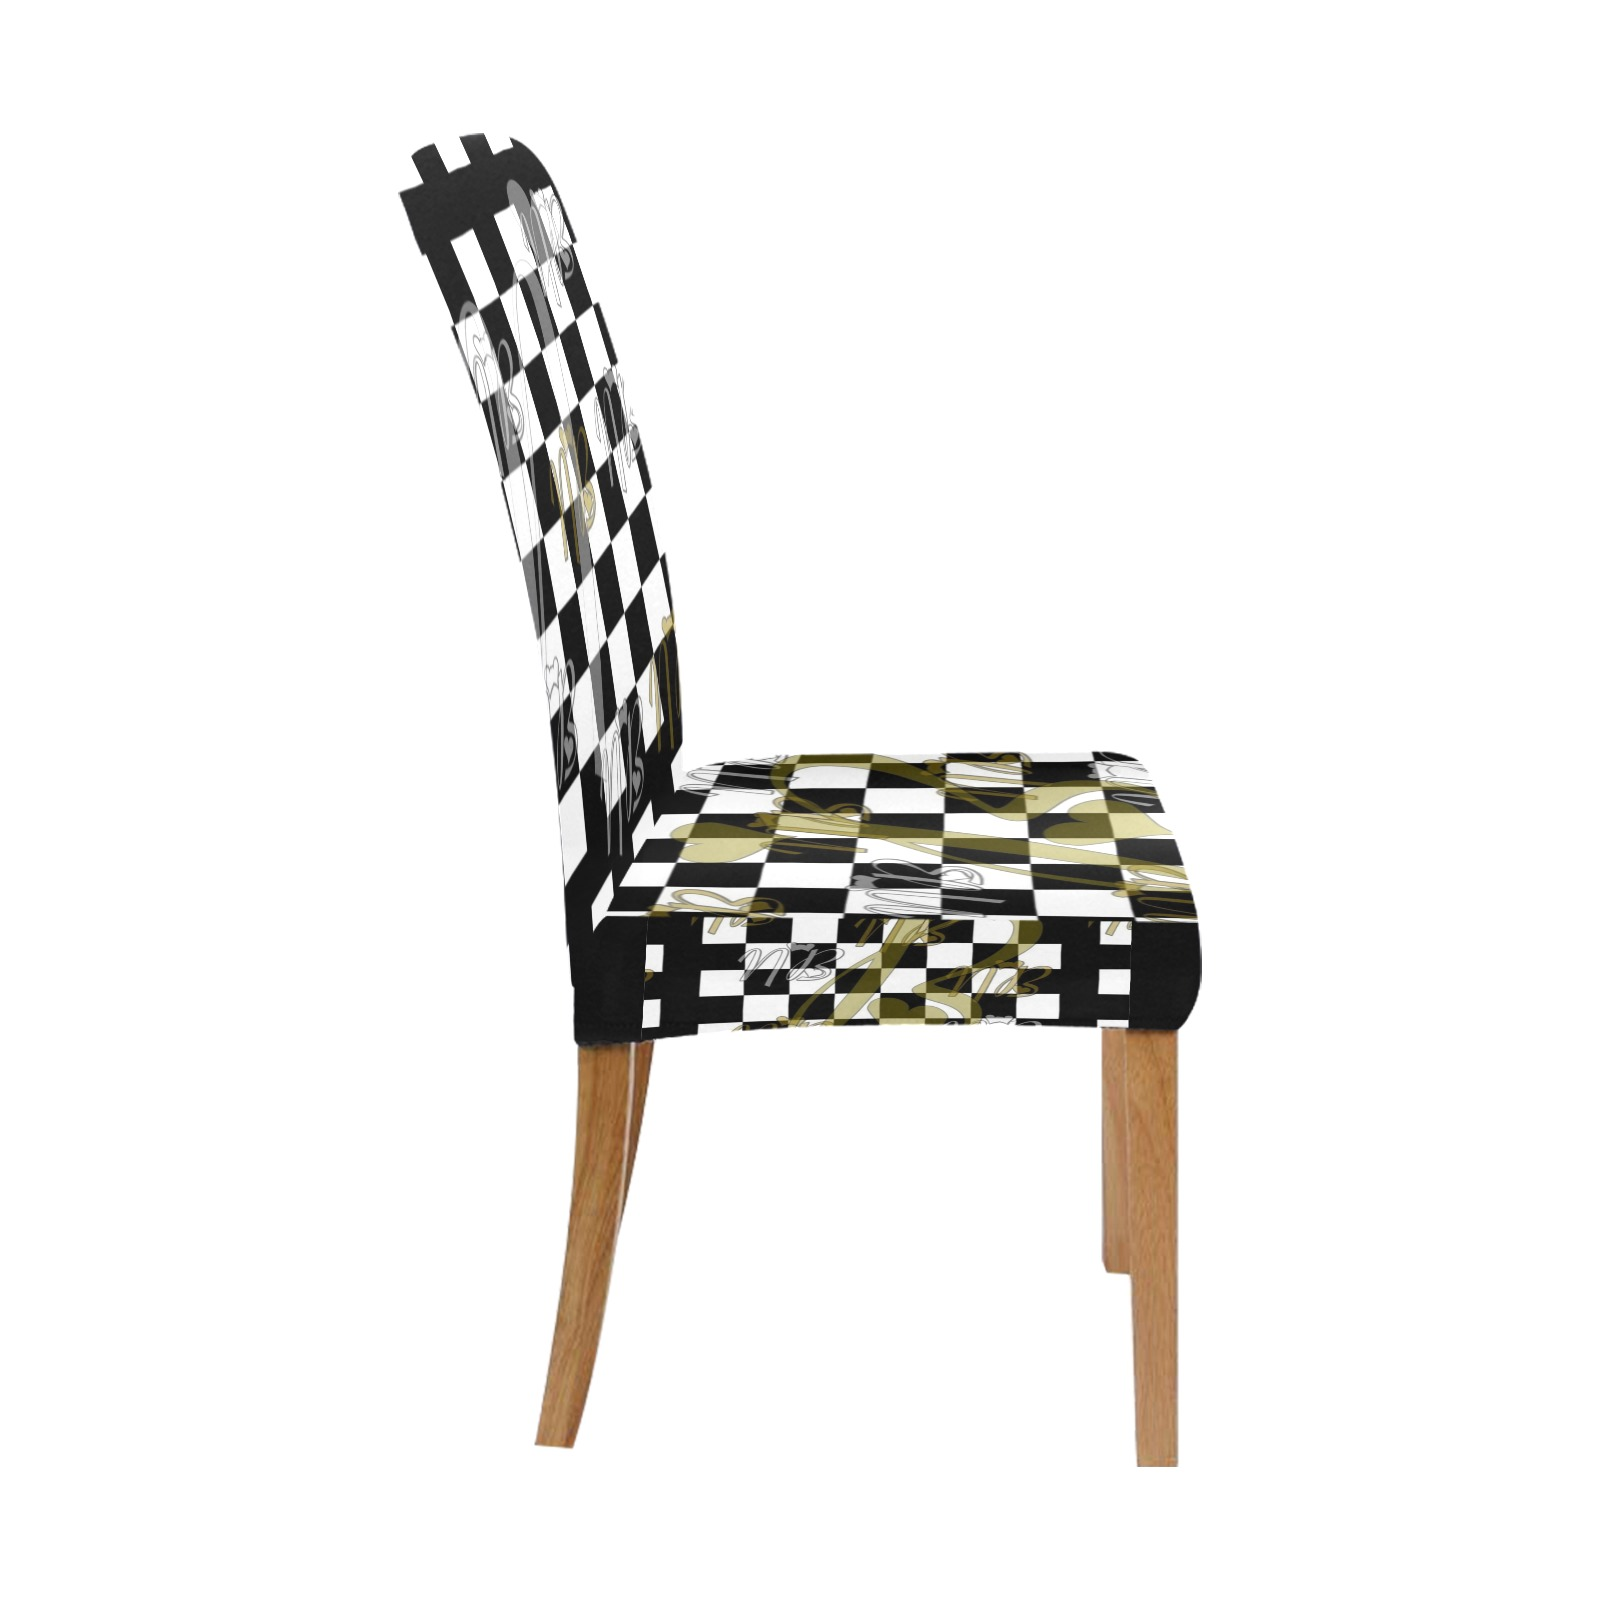 NB Pop Art by Nico Bielow Removable Dining Chair Cover